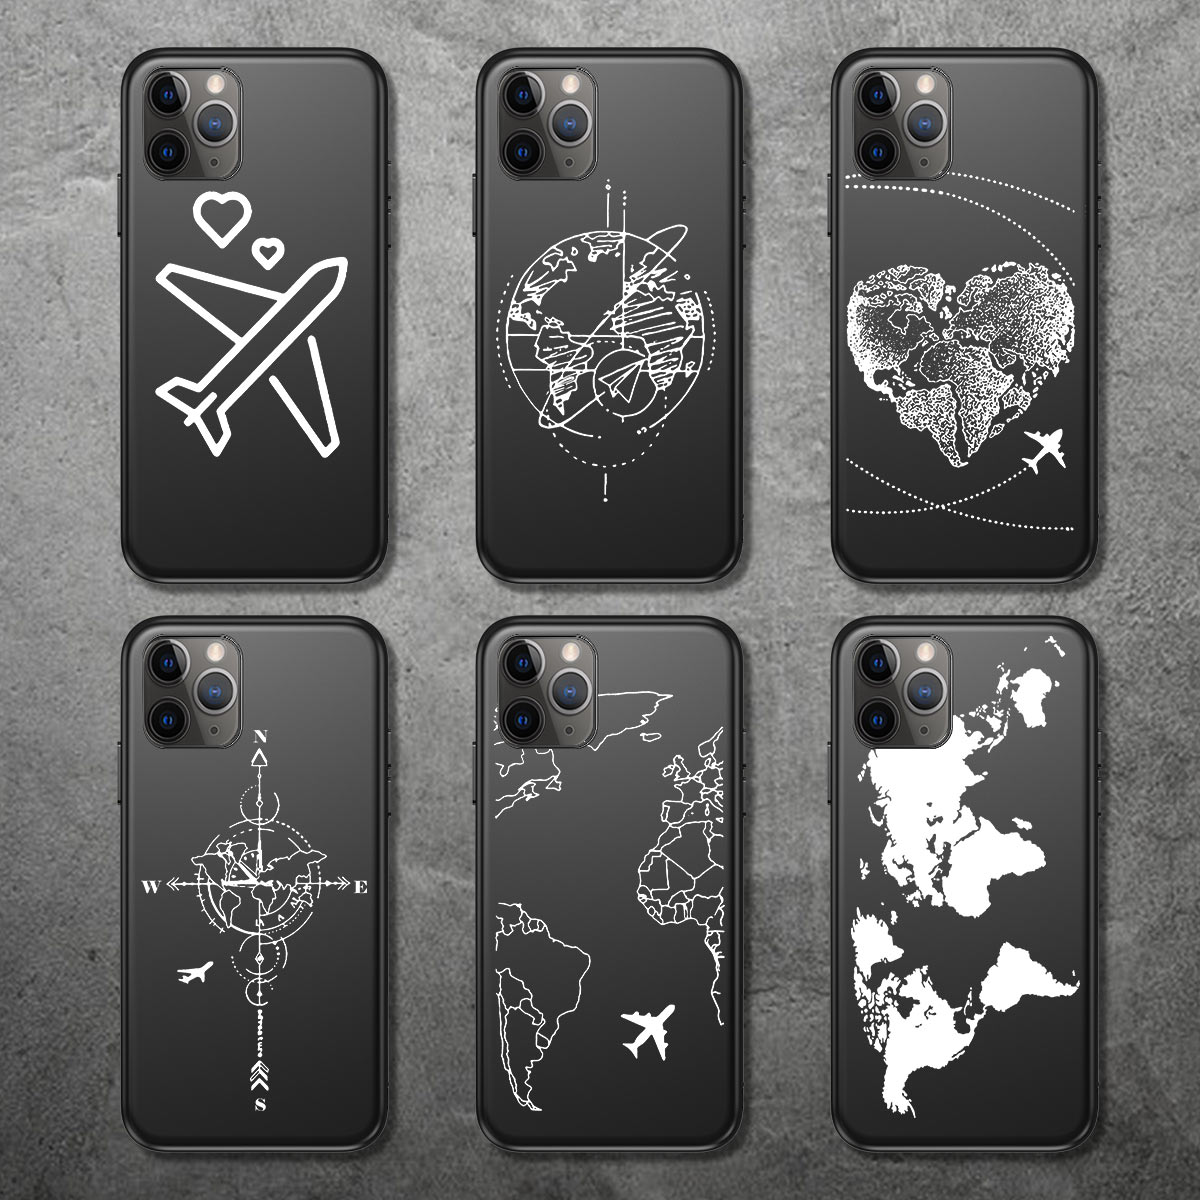 Ottwn Airplane Phone Case For iPhone 11 Pro XS Max 6 6S 7 8 Plus XR X 5 5S SE Cartoon Black World Map Love Soft TPU Back Cover